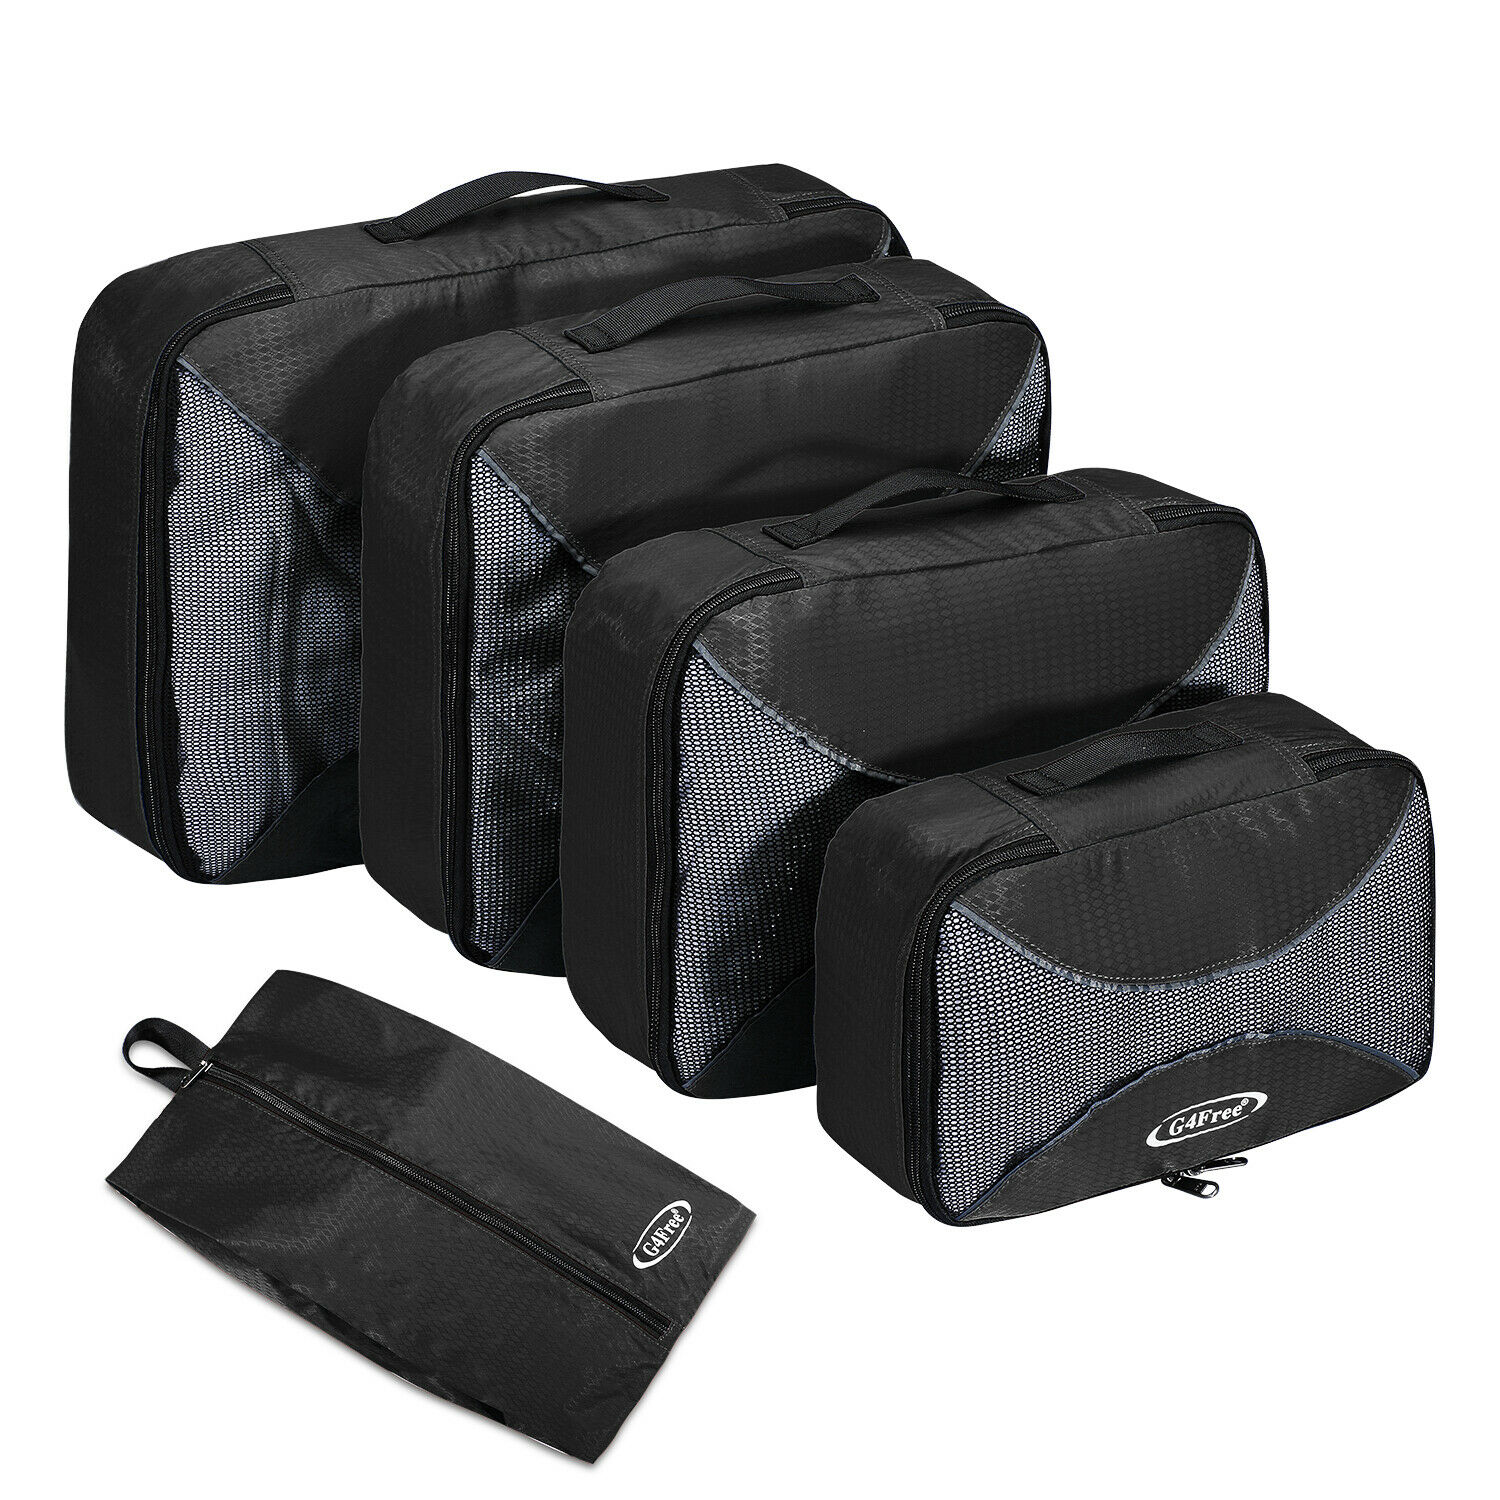 5pcs Packing Cubes Luggage Storage Organiser Travel Compression Suitcase Bag